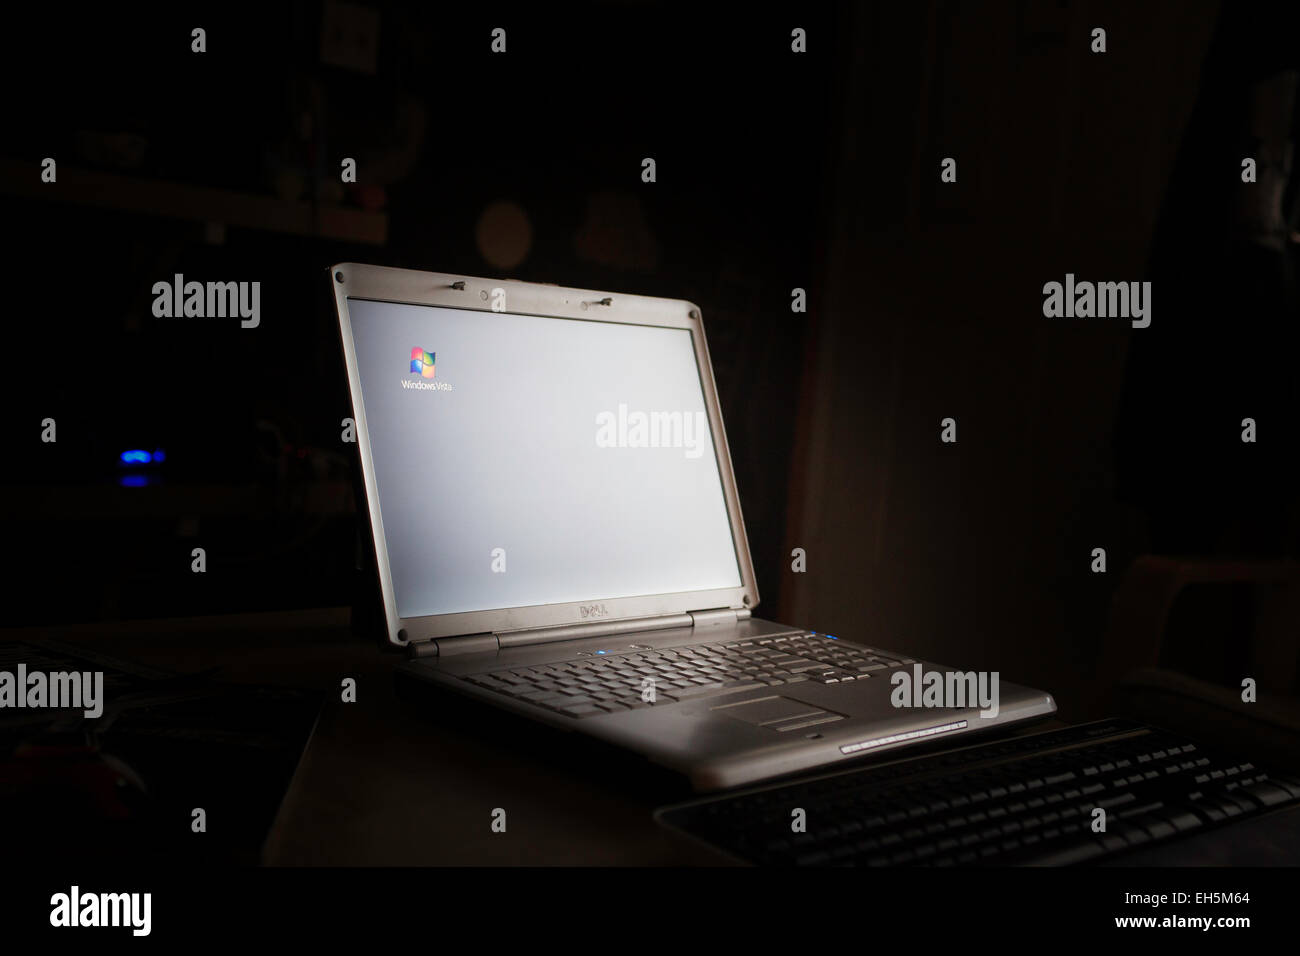 A Dell Laptop Computer in a darkened Room with Windows Vista screen saver active - Stock Image